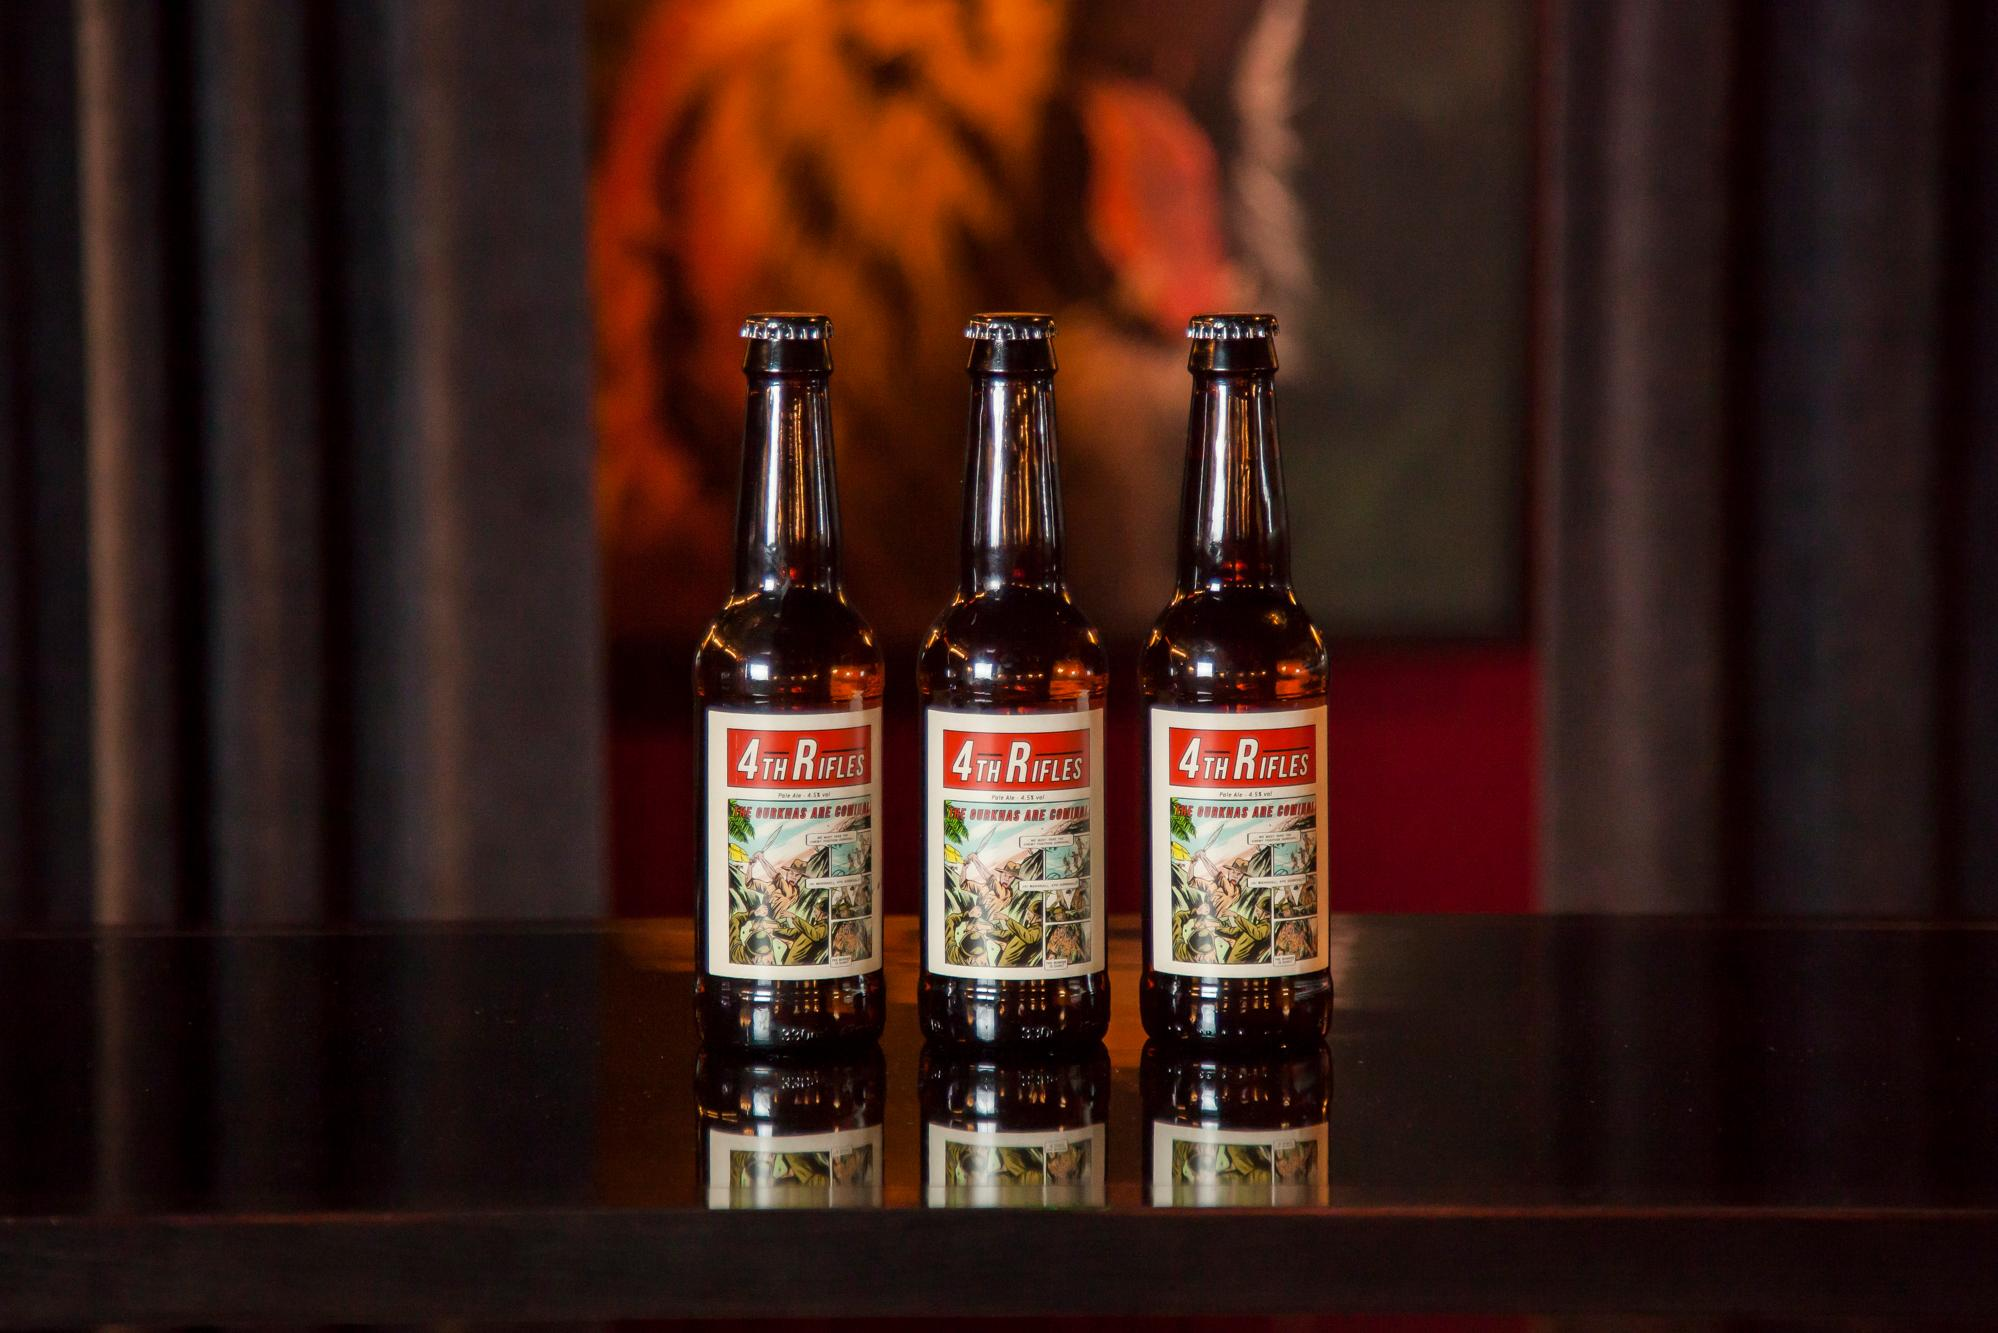 Thornbridge Brewery Give Donation From 4th Rifles Beer Sales To Help Hospitality Staff In Crisis photo